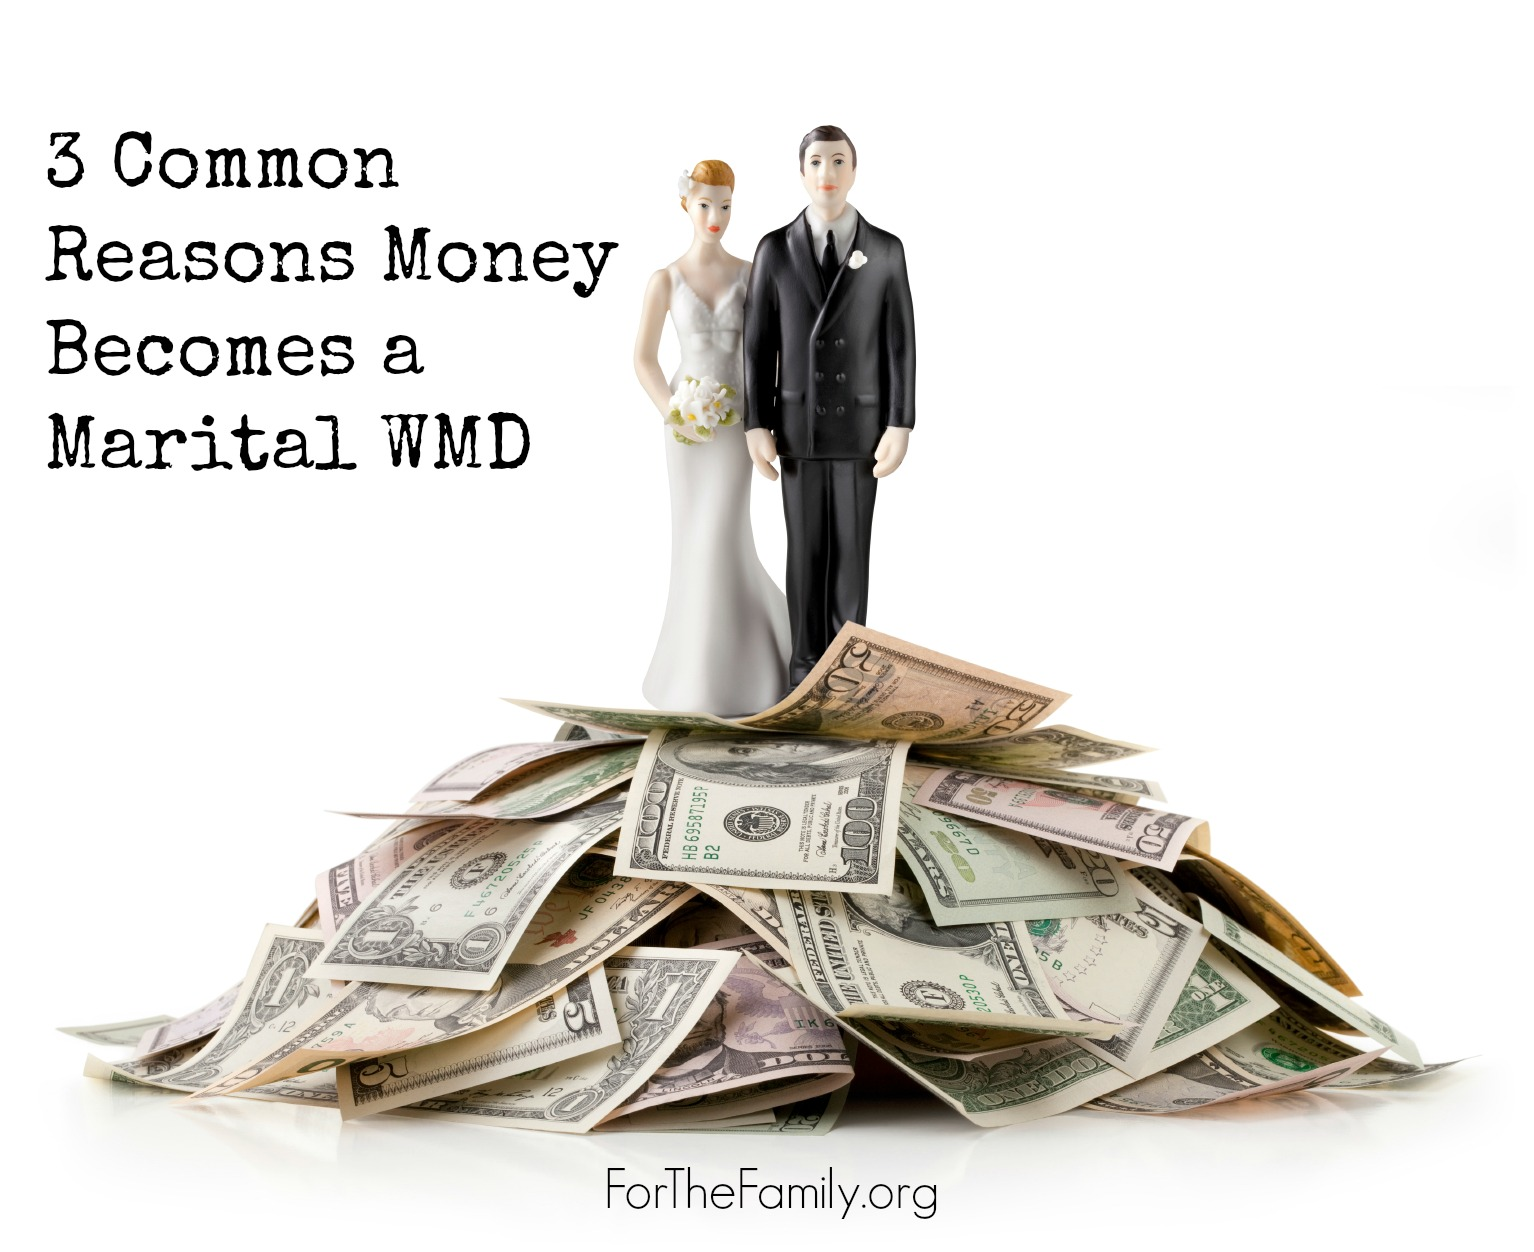 3 Common Reasons Money Becomes a Marital WMD